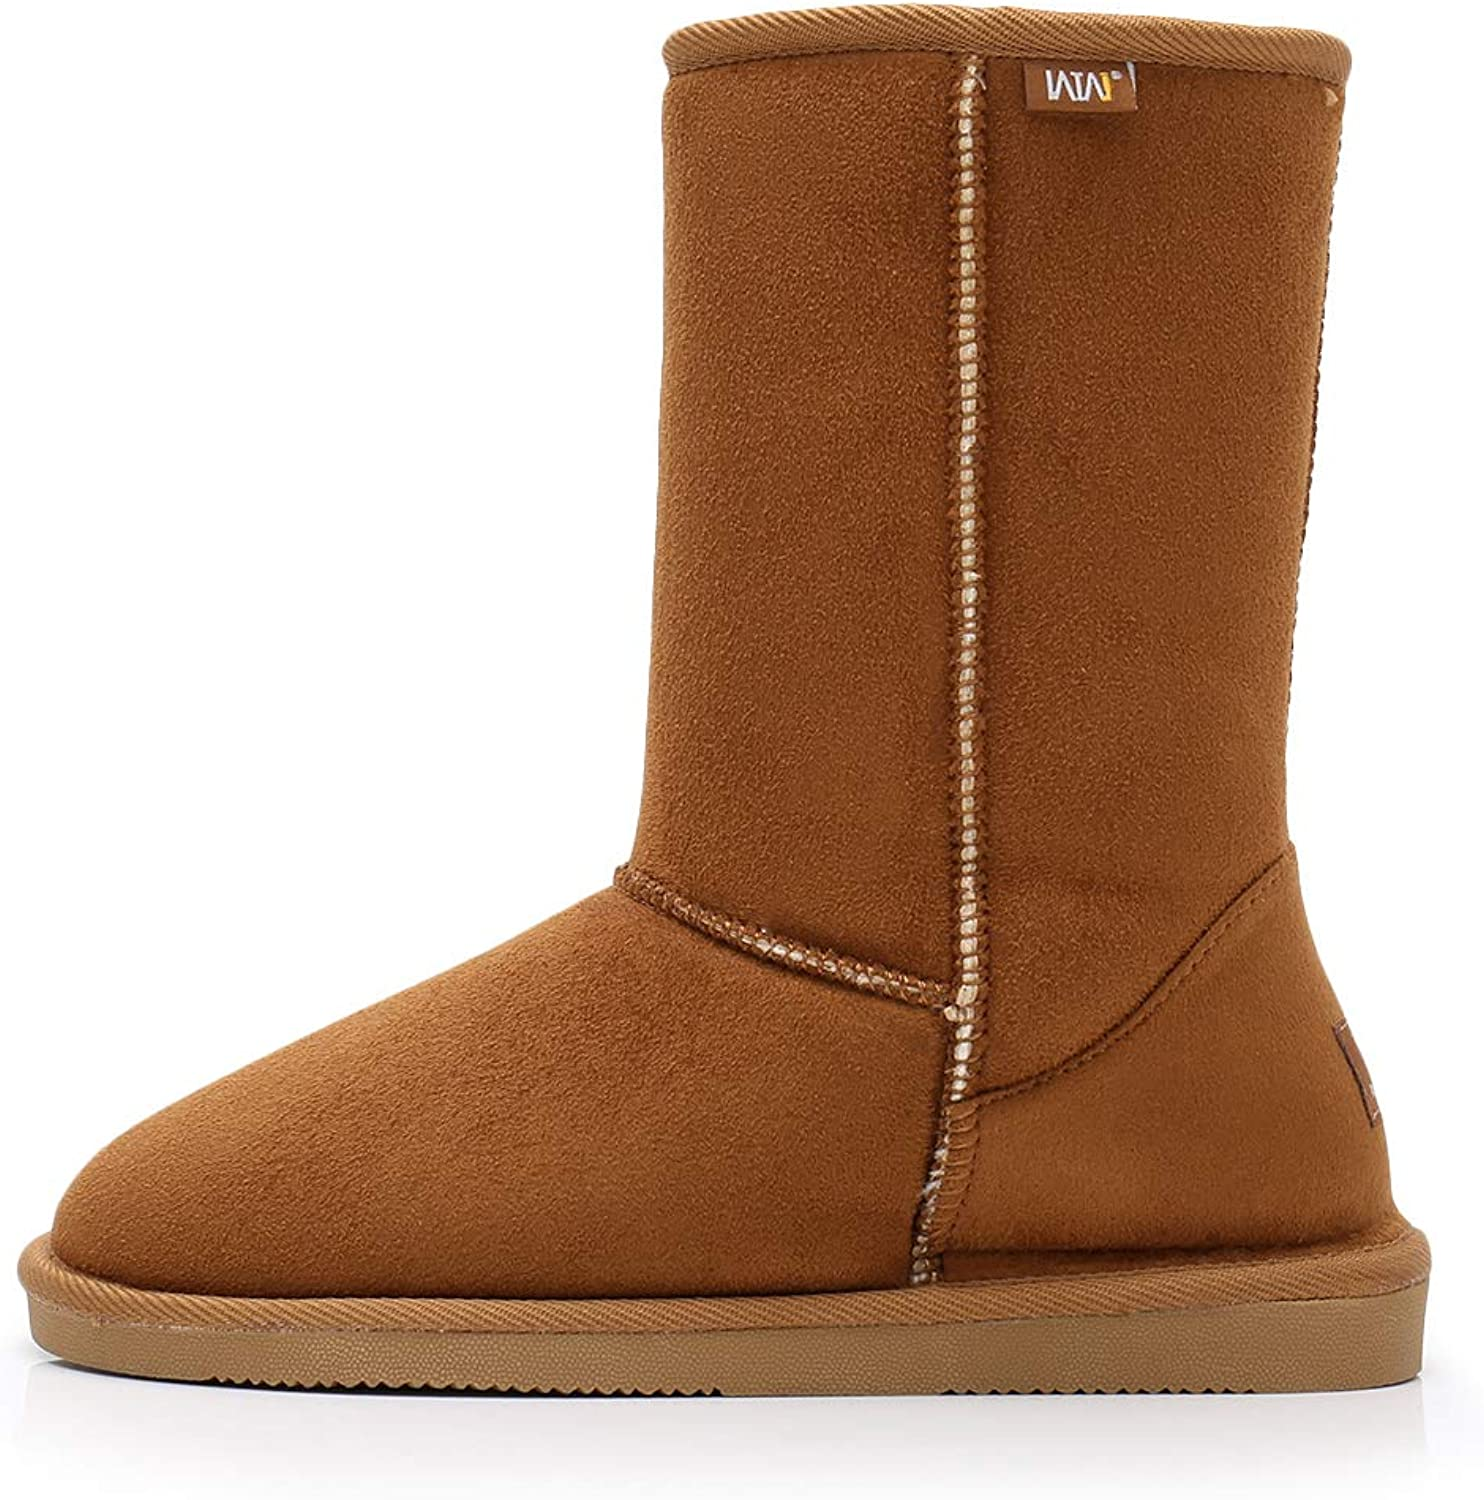 """Women/'s Winter Boots Fashion Suede 10/"""" Mid Calf Shearling Warm Fur Shoes Sizes"""